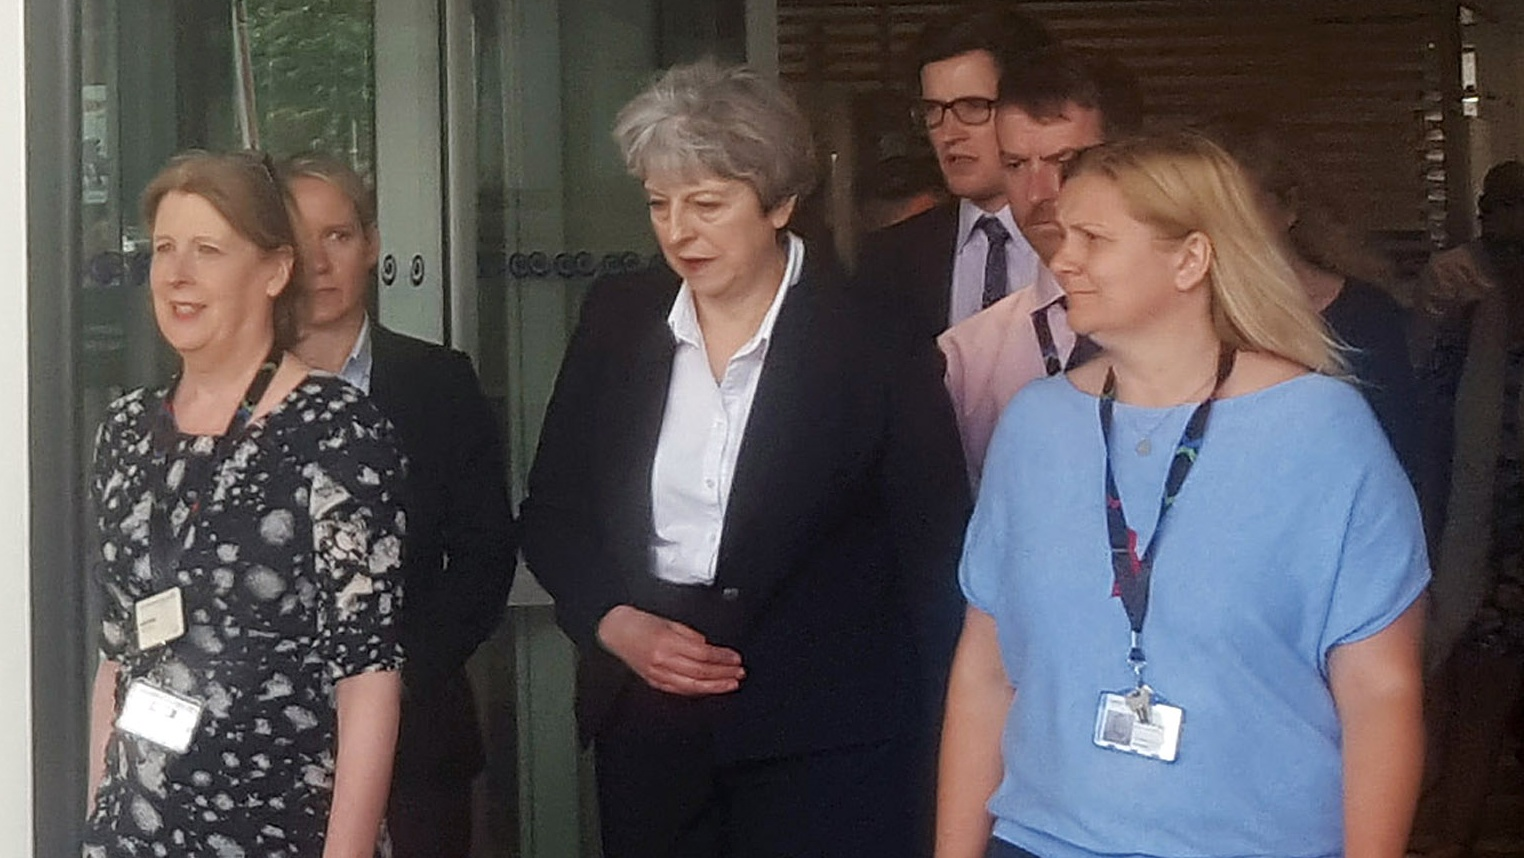 Theresa May 'welled up' at meeting with Grenfell fire survivors